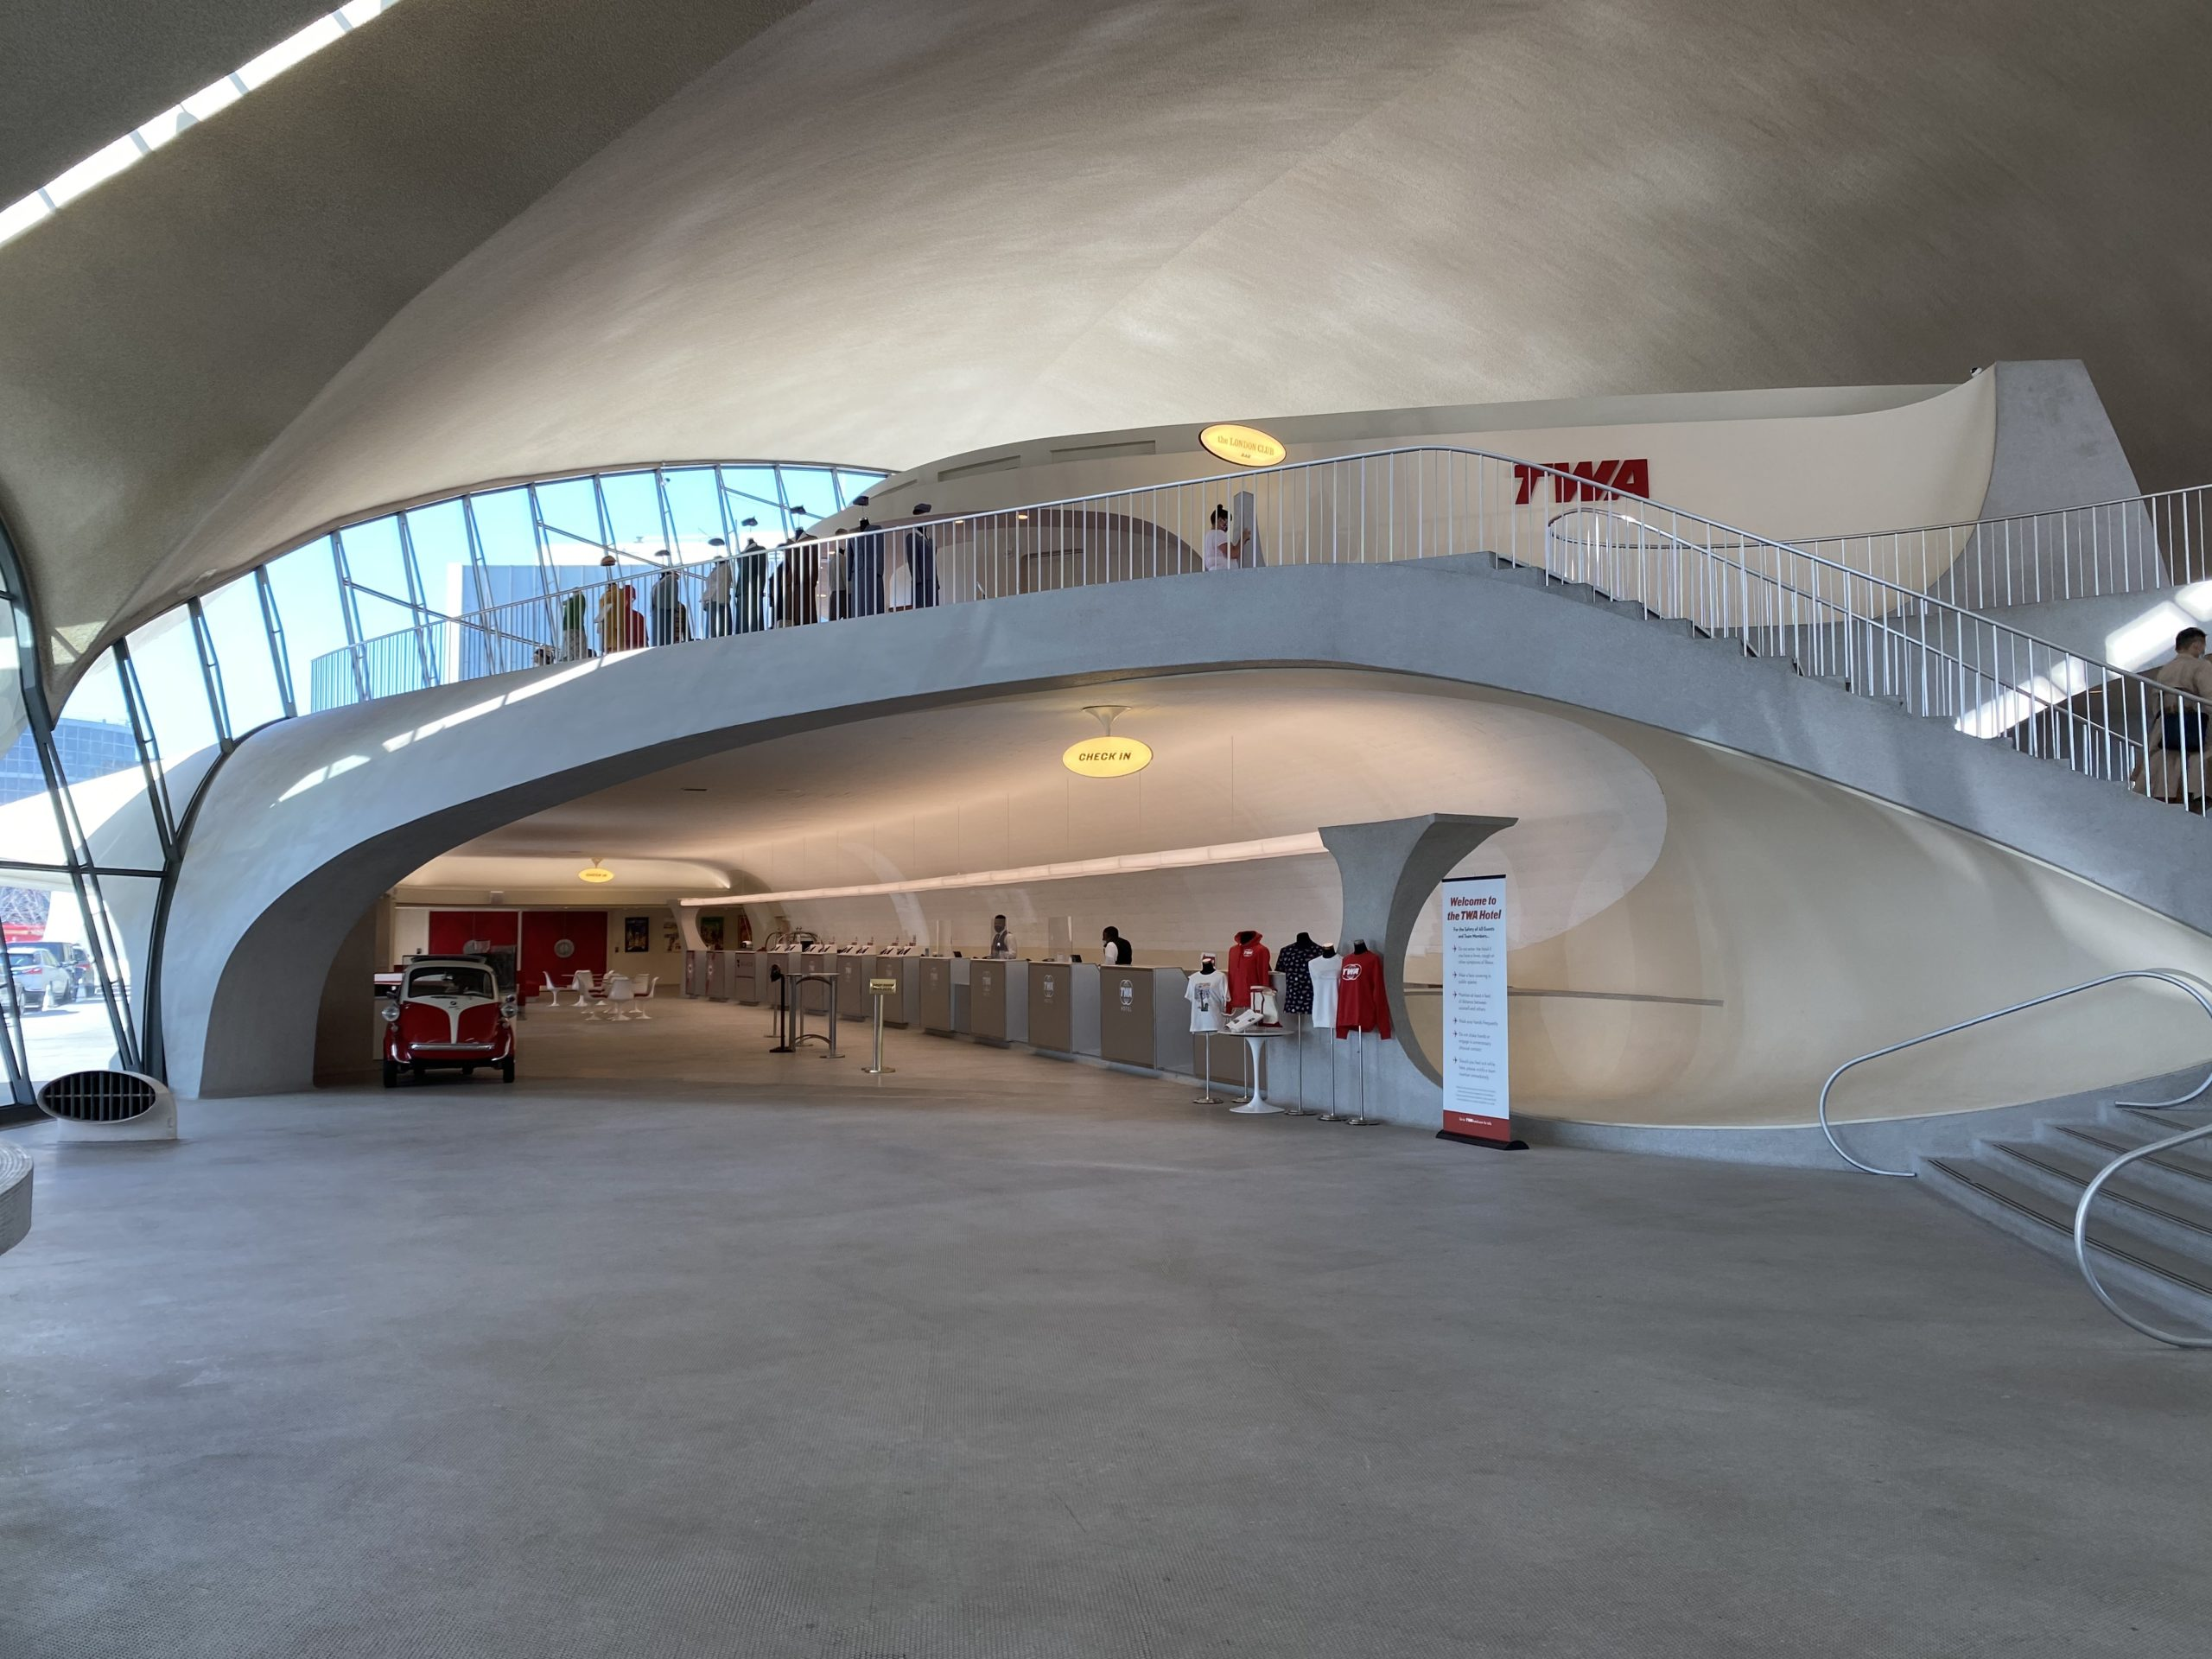 twa hotel check-in desk